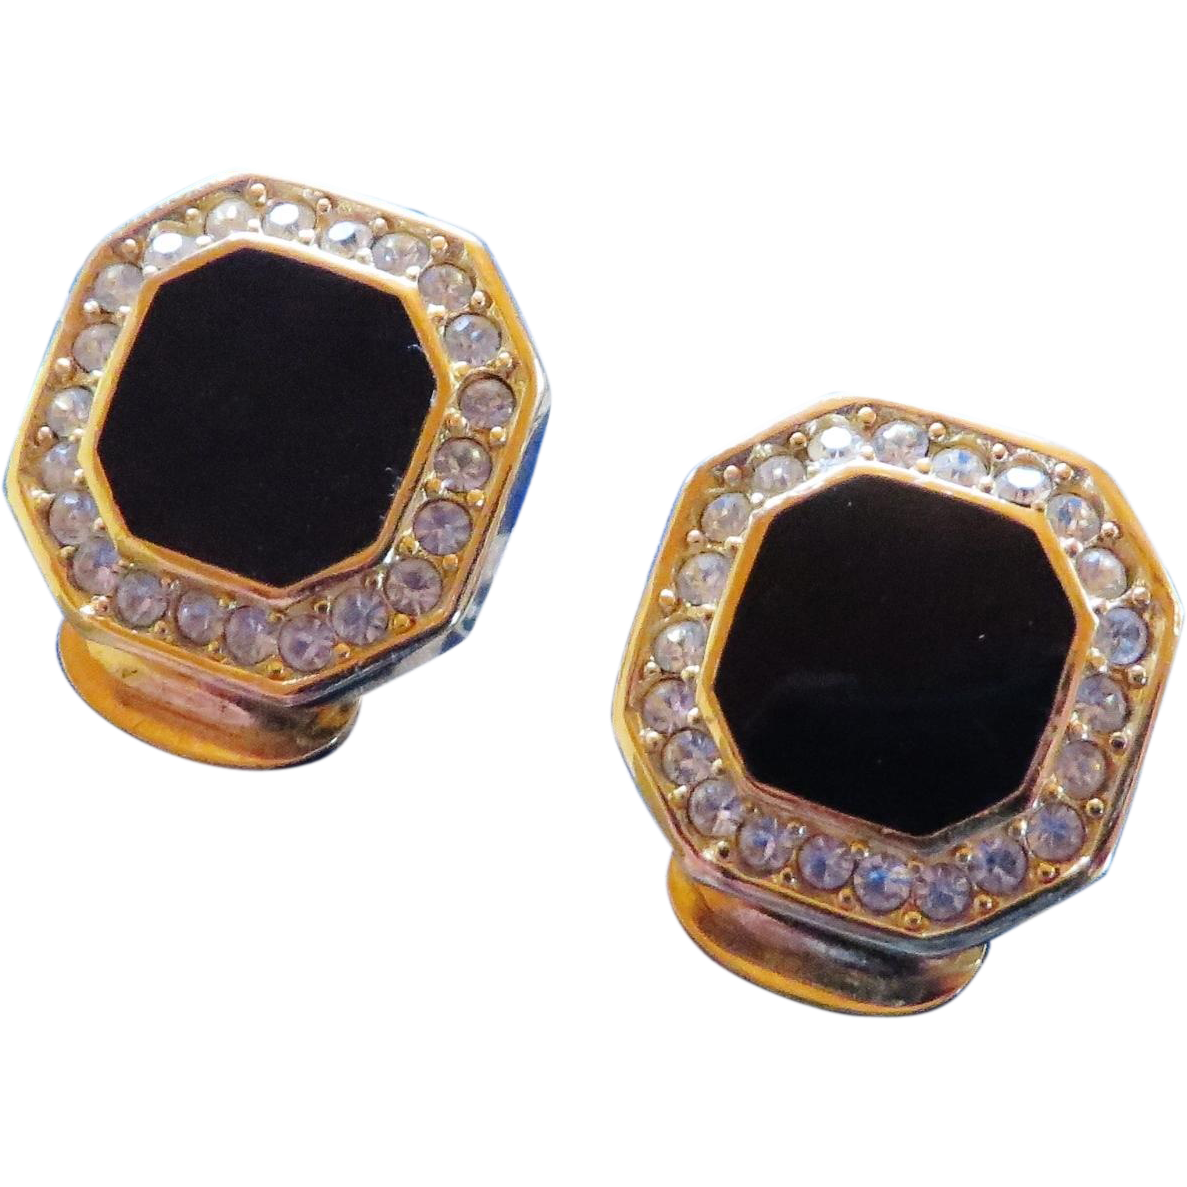 Vintage Christian Dior Earrings